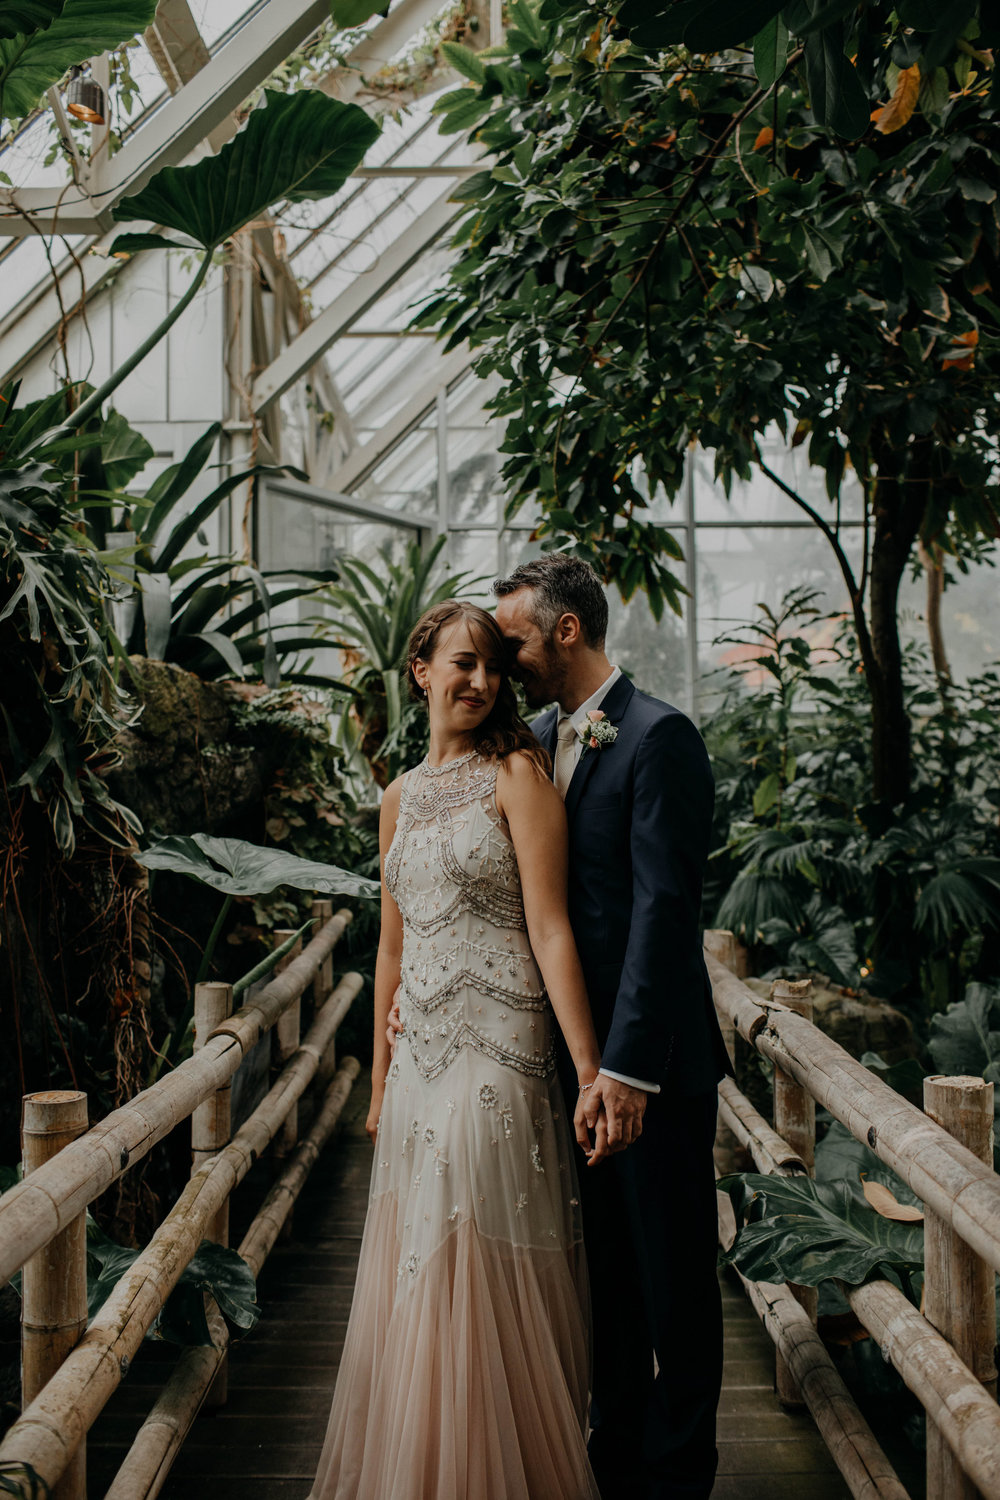 franklin park conservatory wedding columbus ohio wedding photographer grace e jones photography121.jpg